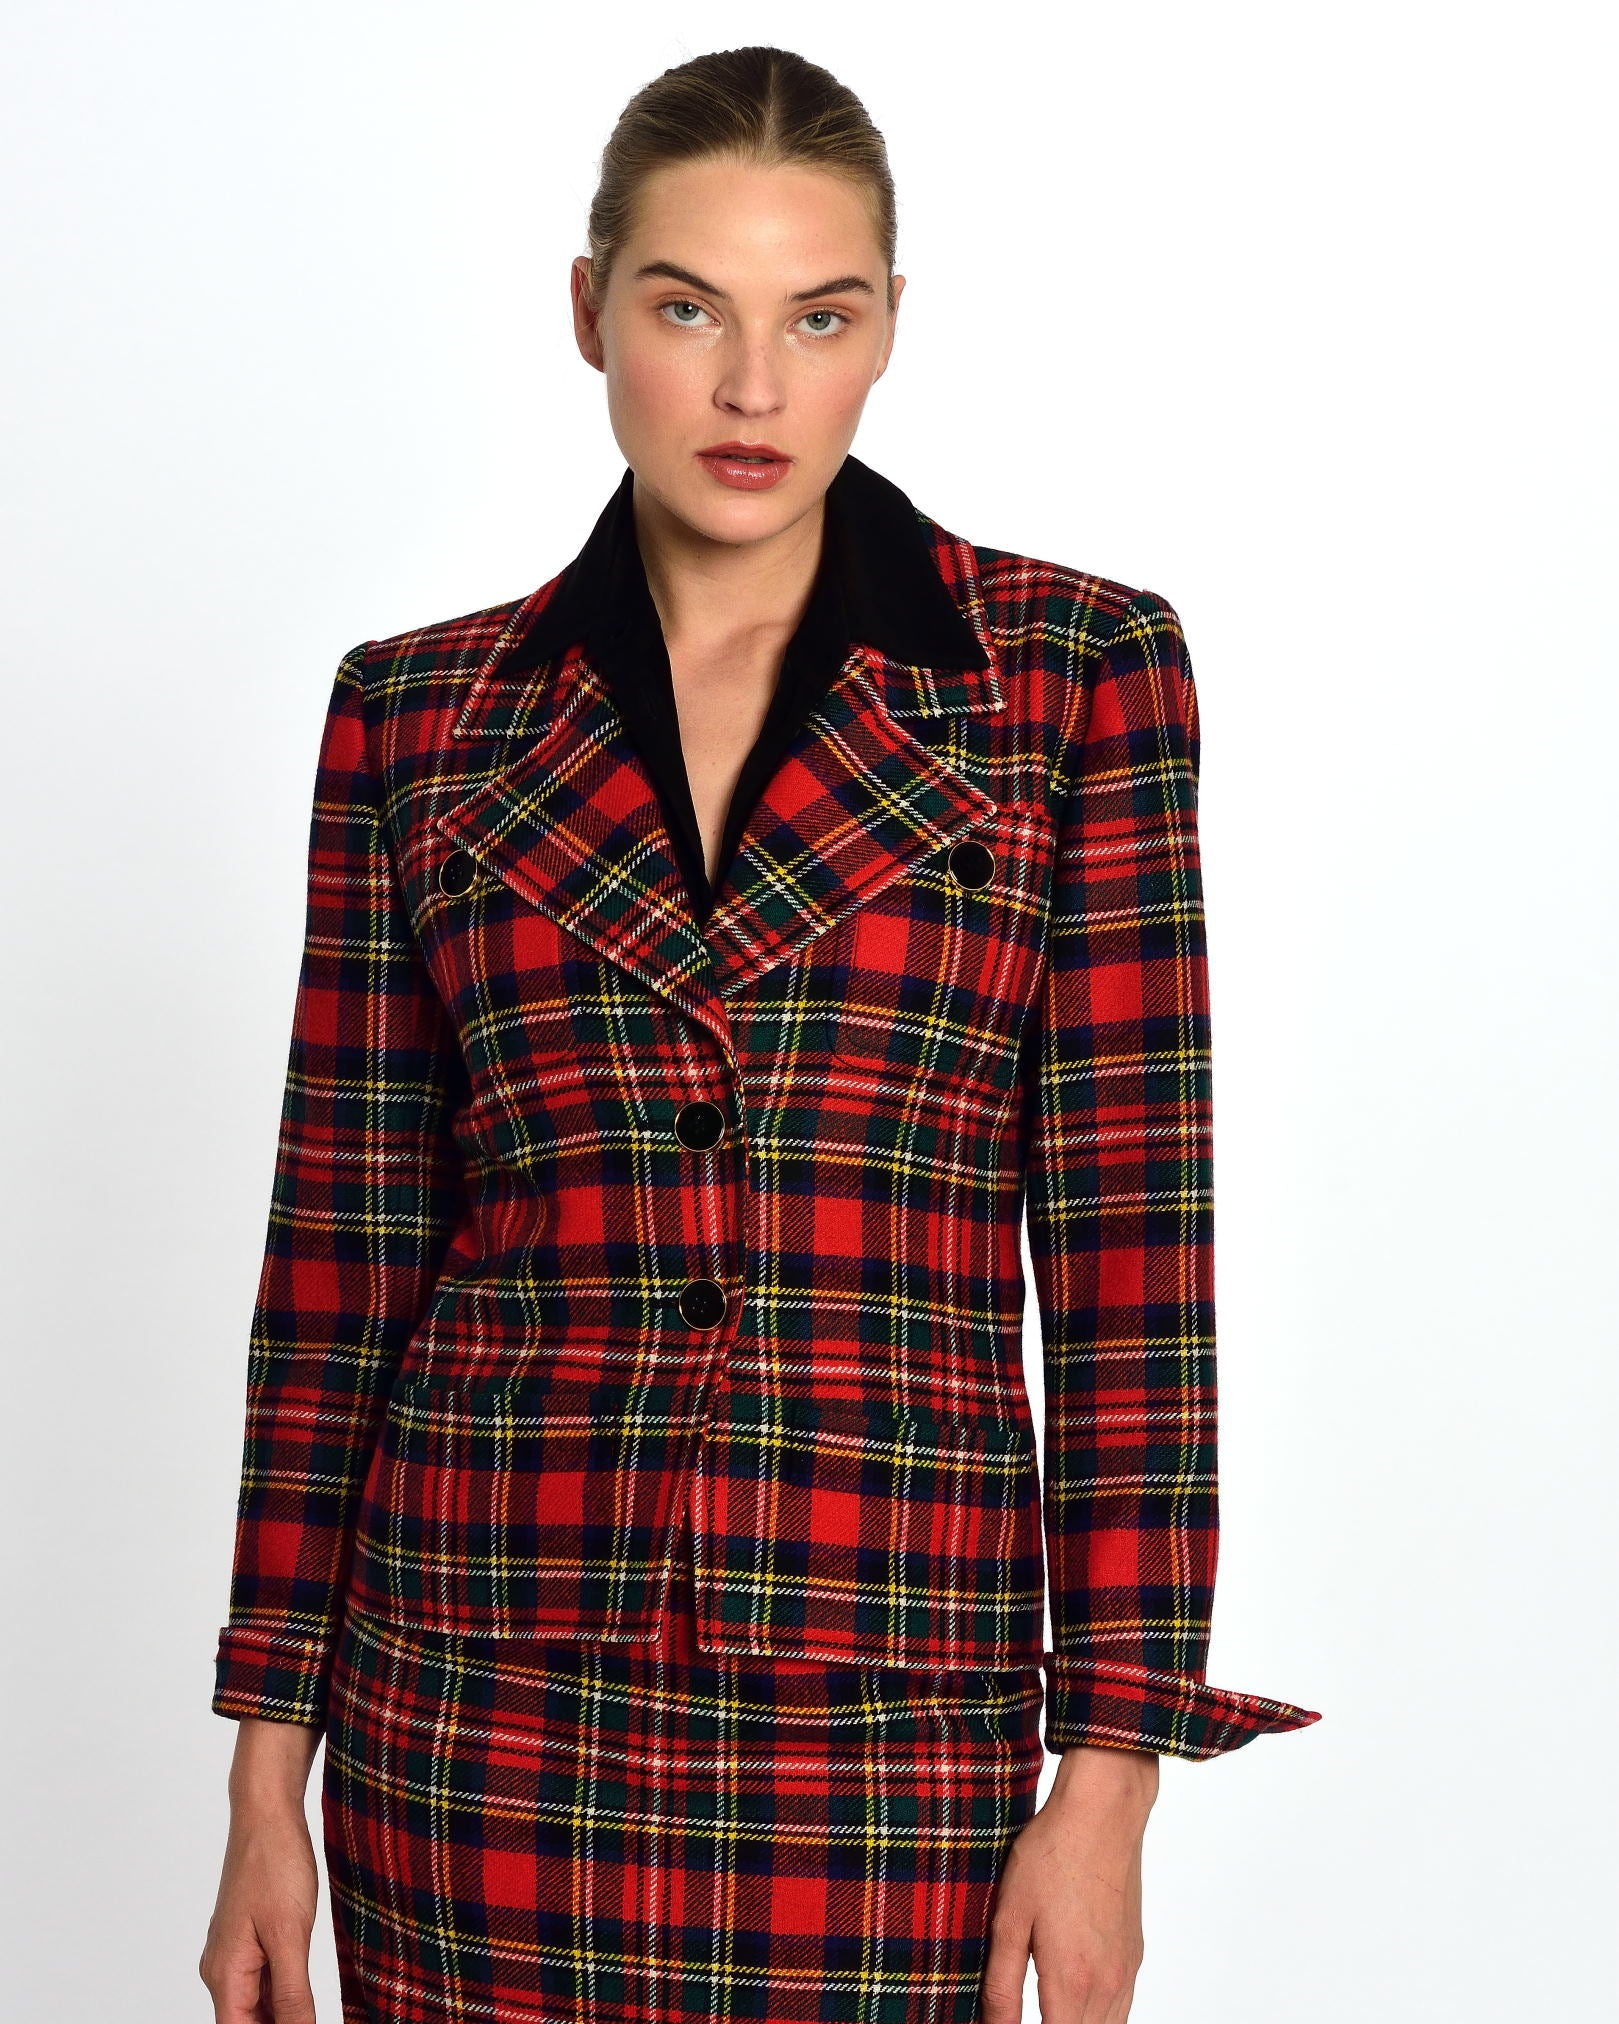 YVES SAINT LAURENT Tartan Suit Skirt